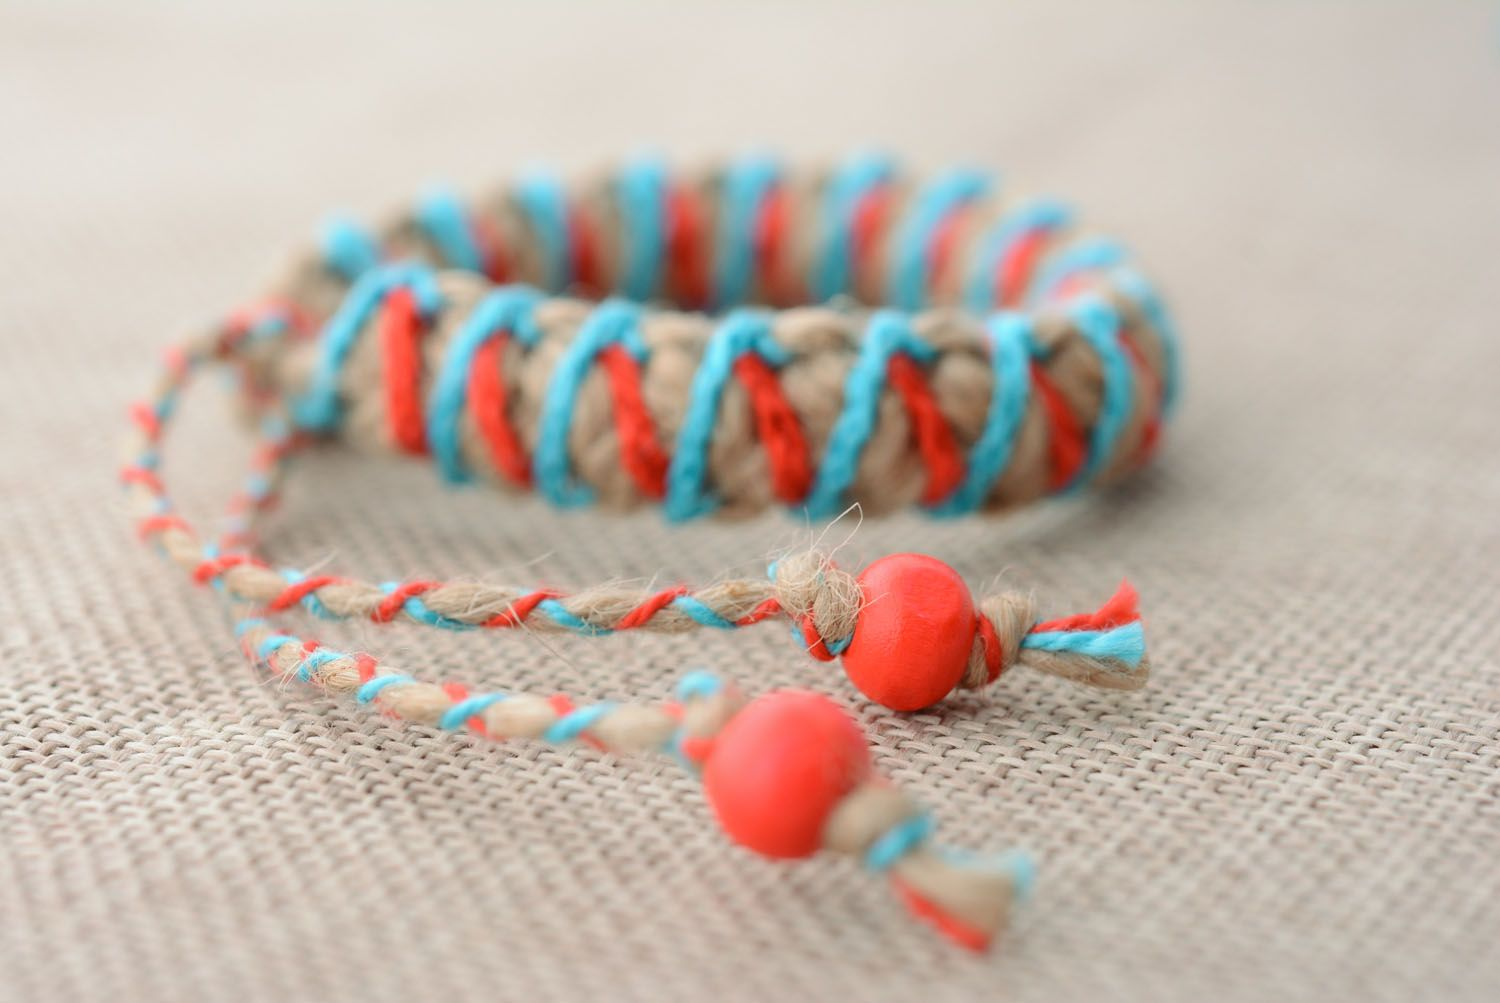 Braided friendship bracelet photo 2